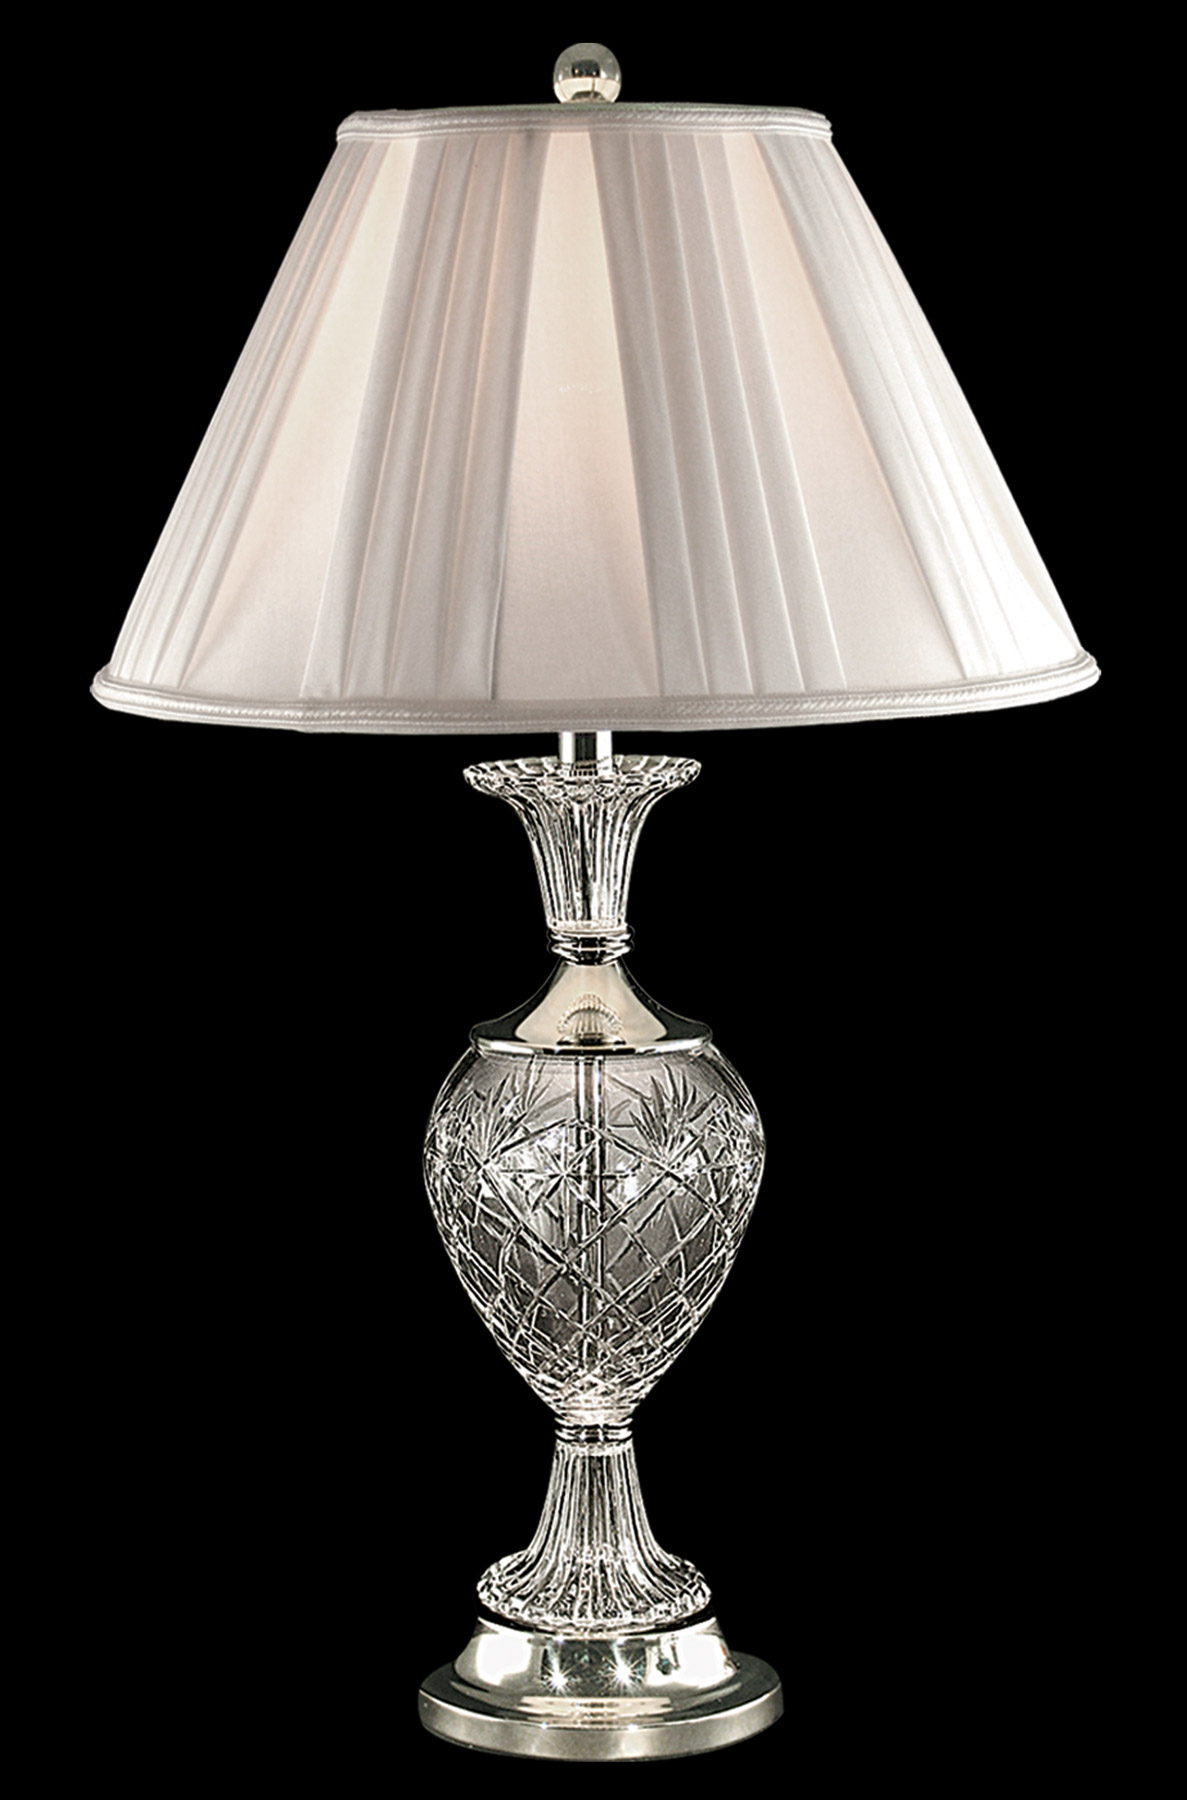 Dale Tiffany Gt70463 Crystal Table Lamp